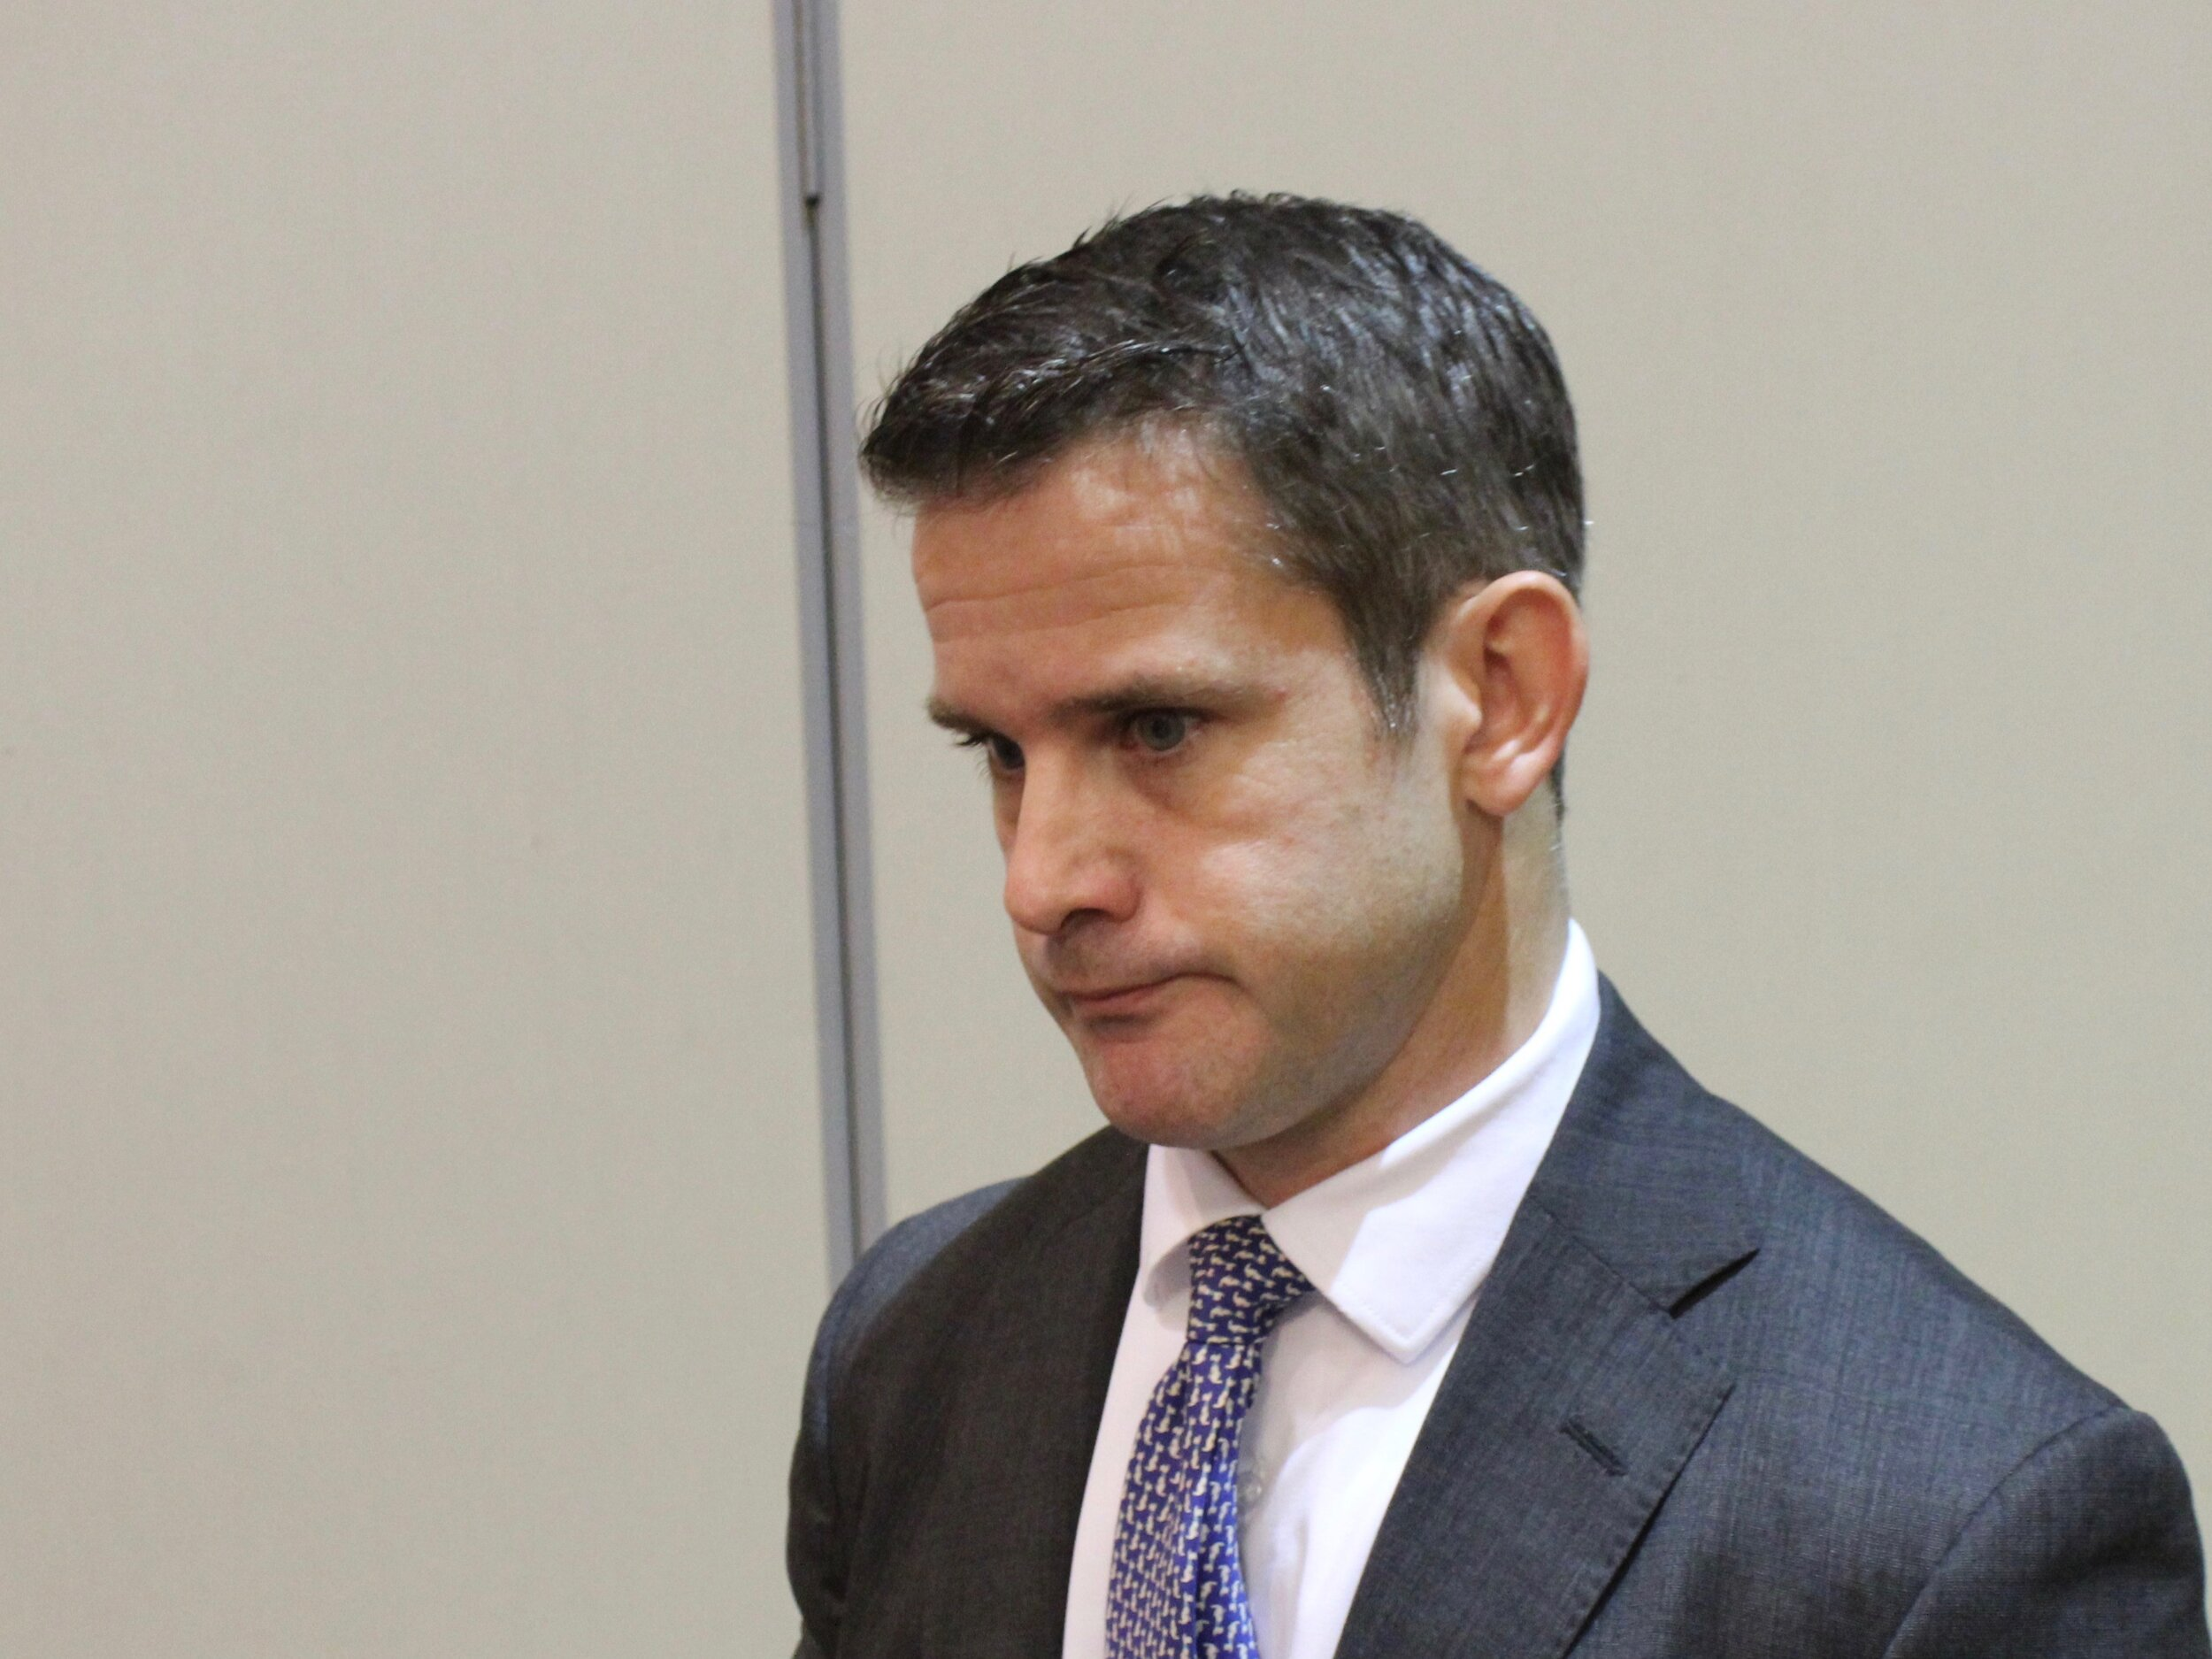 Congressman Adam Kinzinger says he still supports President Trump, just not everything he says or does. (One Illinois/Ted Cox)